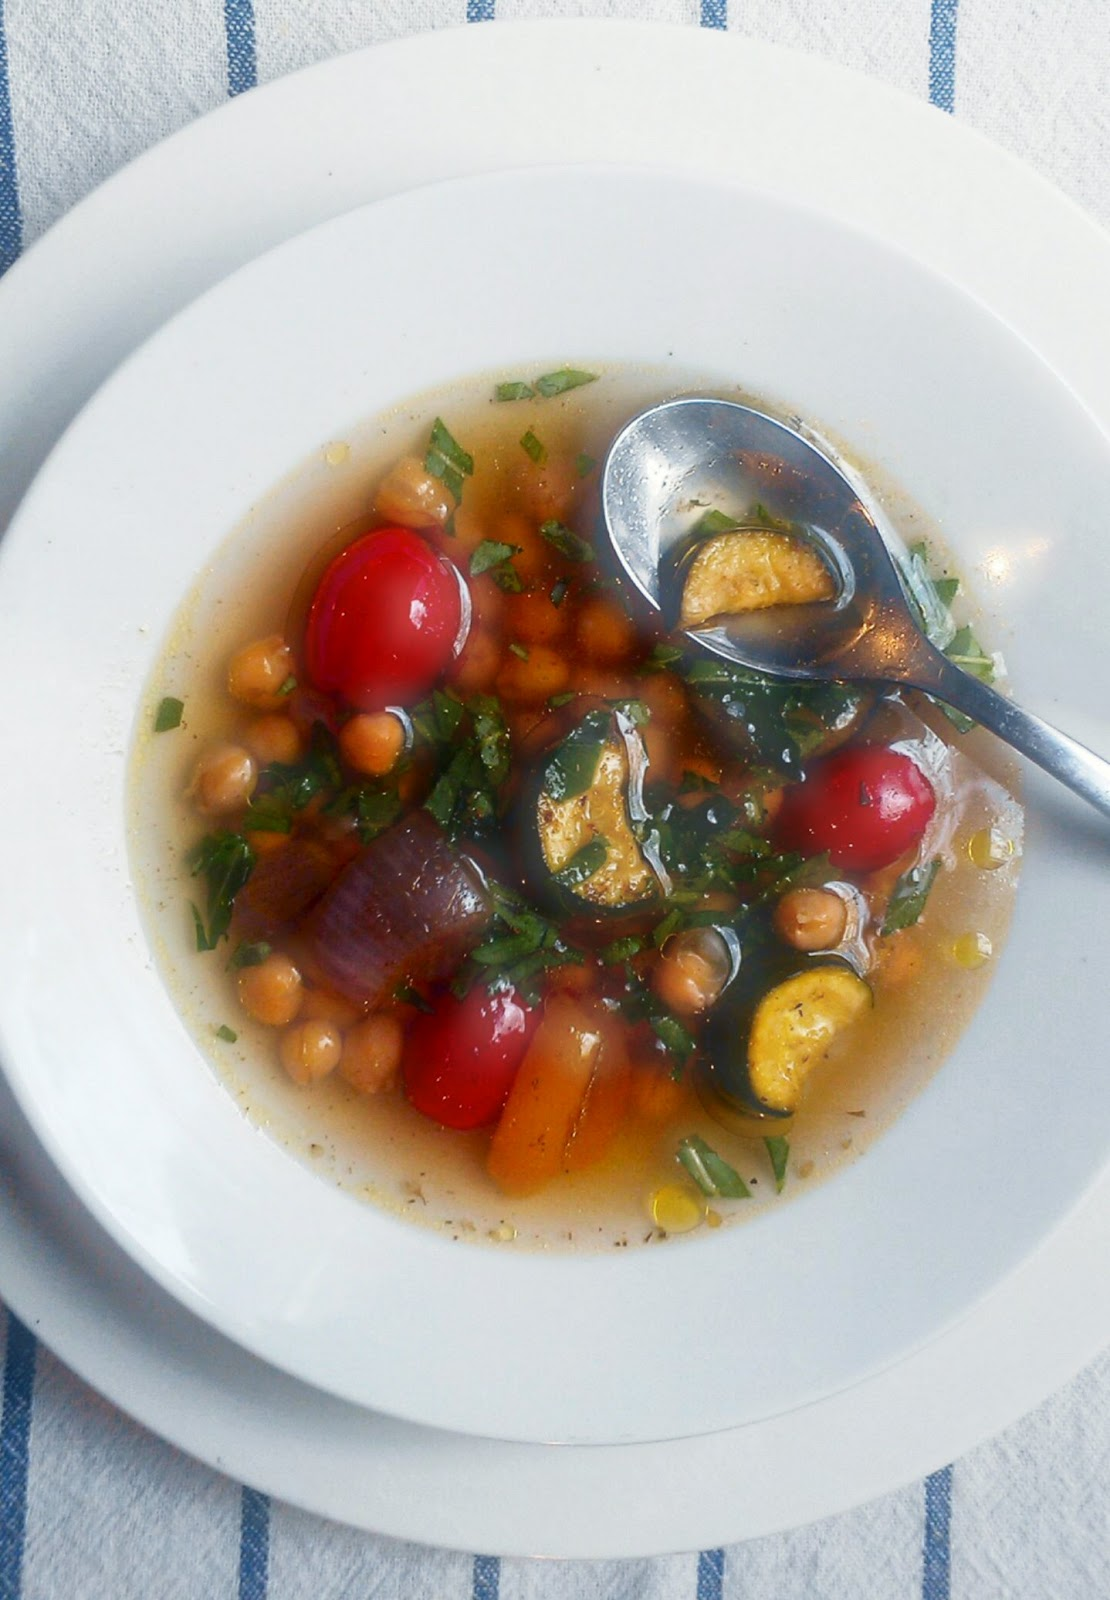 Cumin-Spiked Chickpea and Grilled Veg Soup